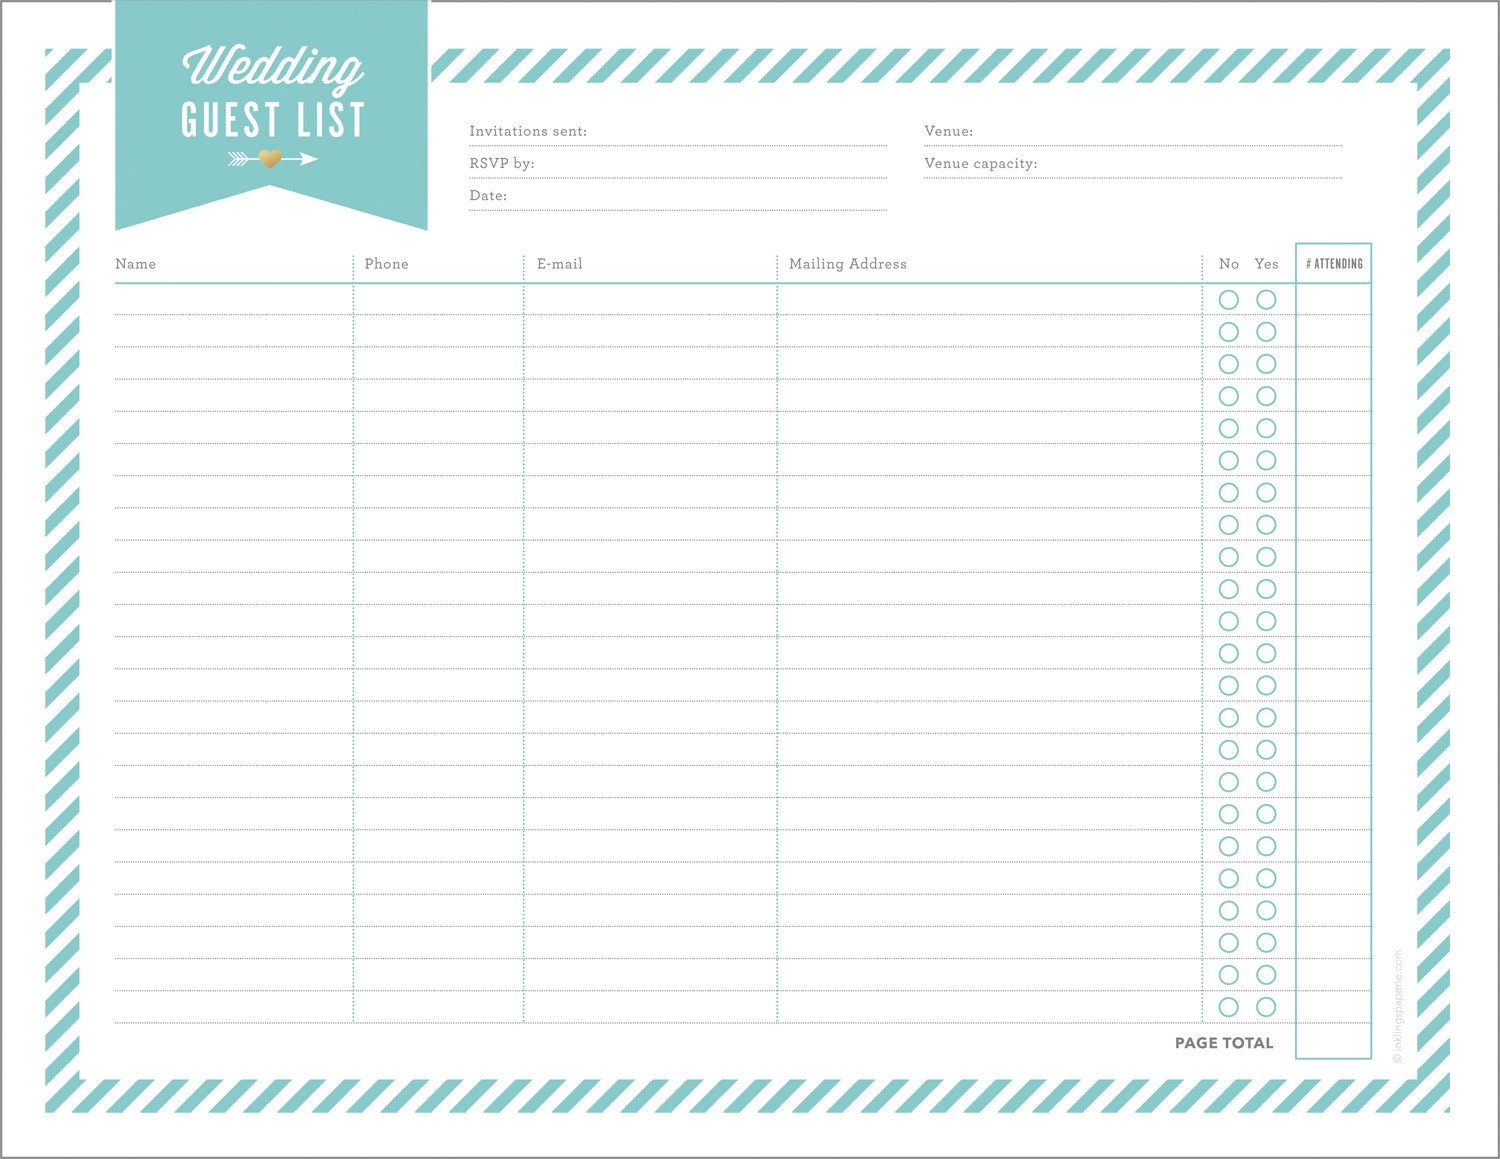 Wedding Guest List Printable Free Wedding Planning Printables & Checklists